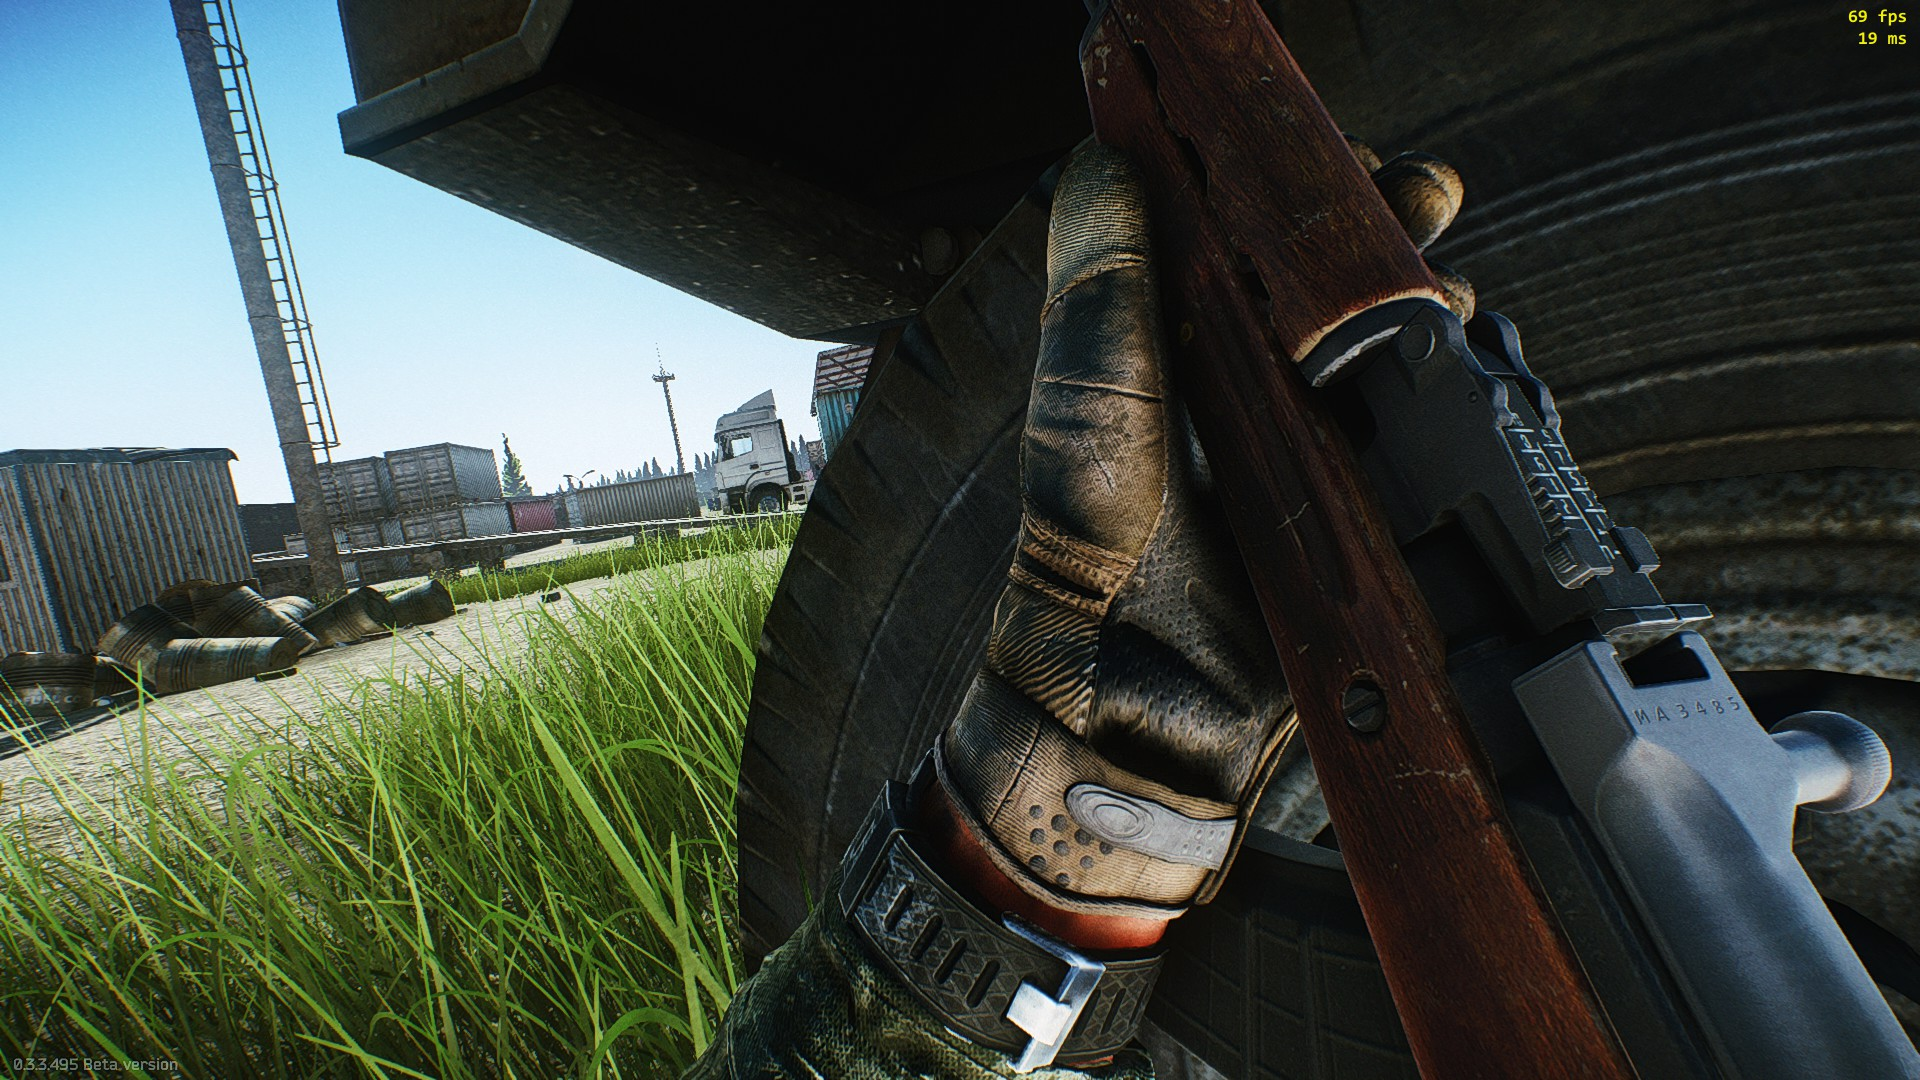 Is using Reshade an rule break? - Questions - Escape from Tarkov Forum